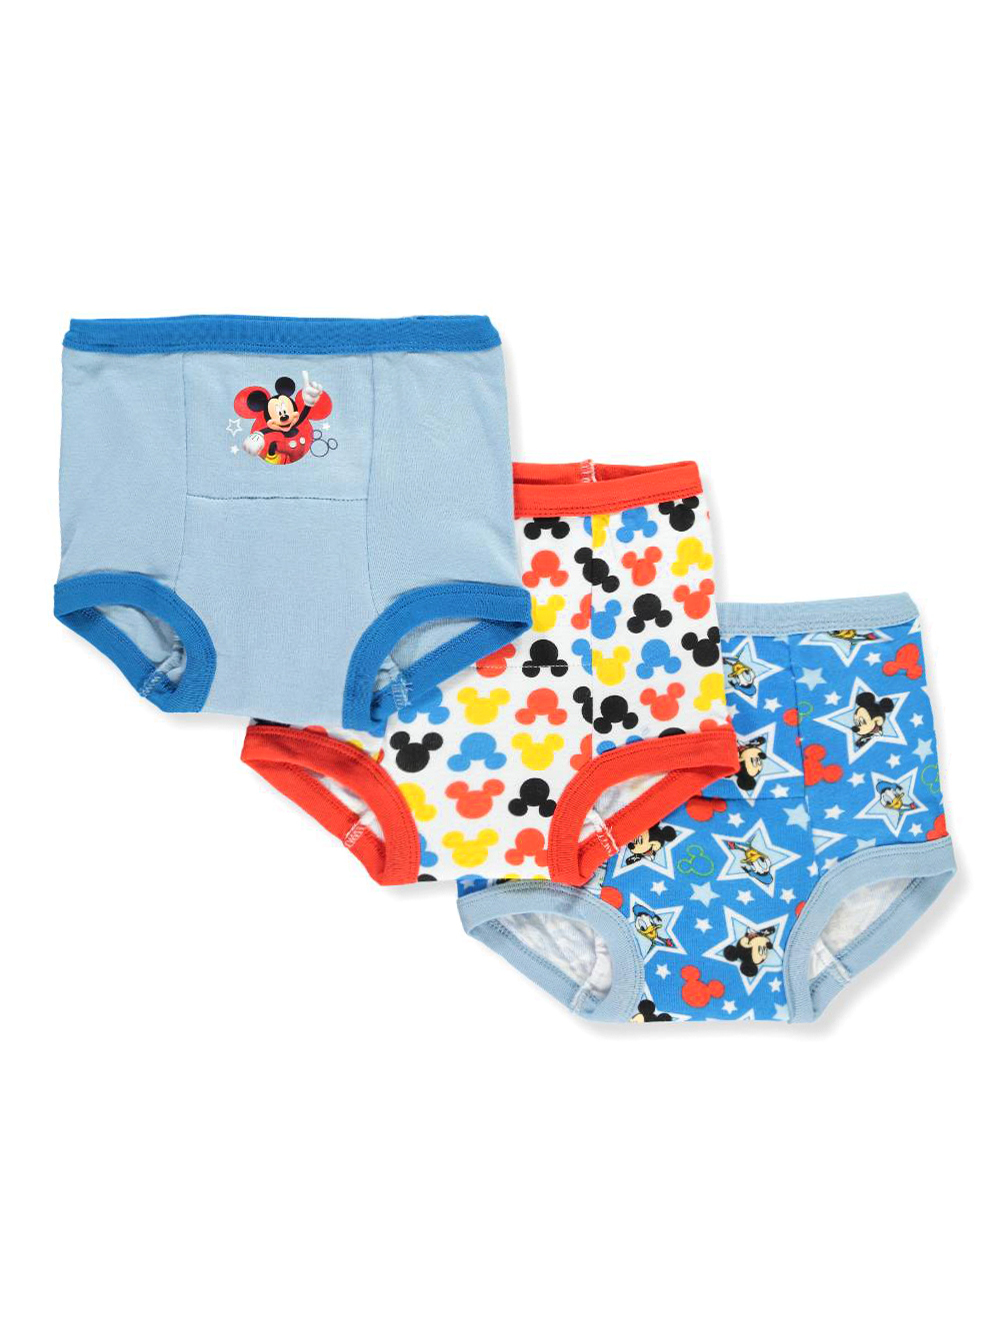 Mickey Mouse toddler boy 3-pack or 7-pack Potty Training Pant